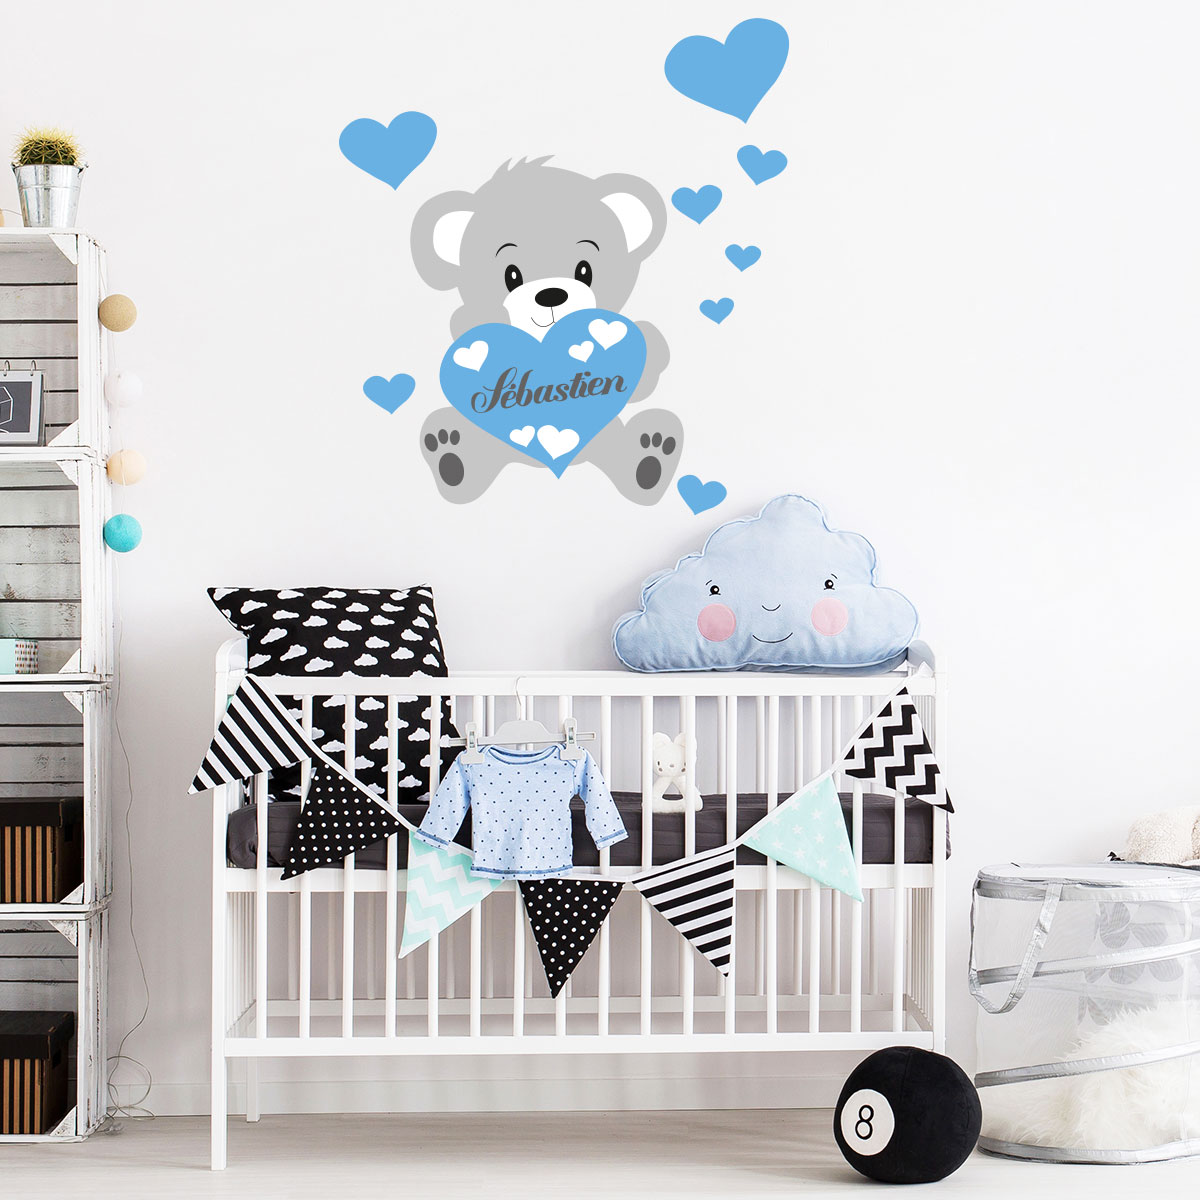 sticker pr nom personnalis ourson bleu stickers chambre enfants chambre b b ambiance sticker. Black Bedroom Furniture Sets. Home Design Ideas